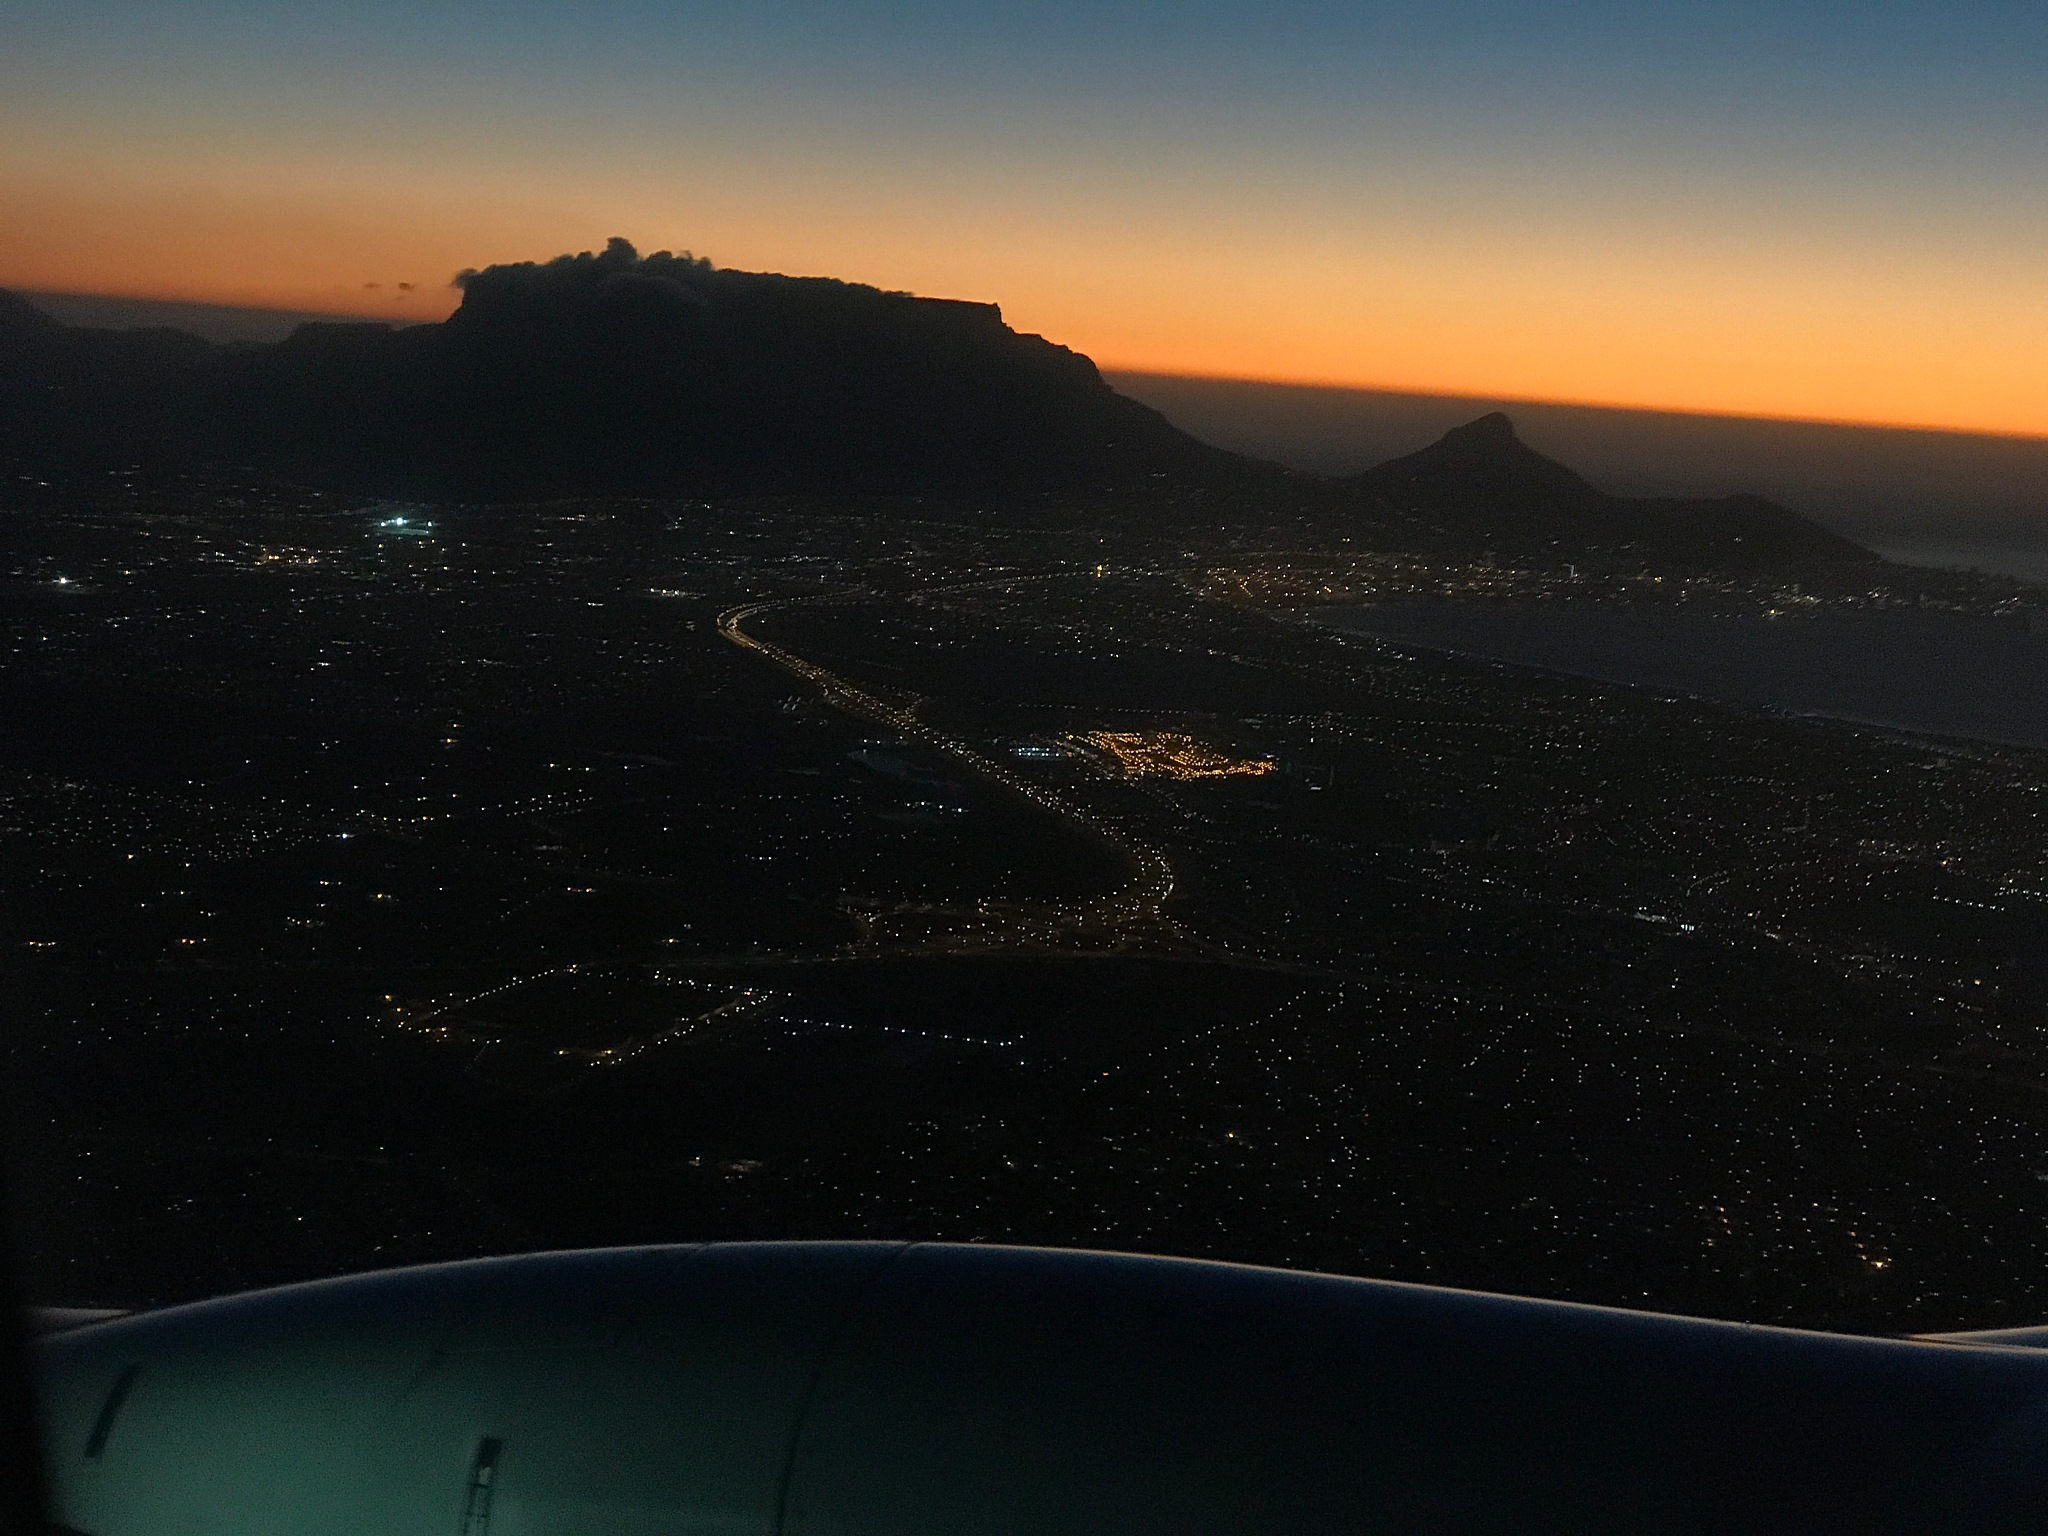 Approaching Cape town by Tinanina